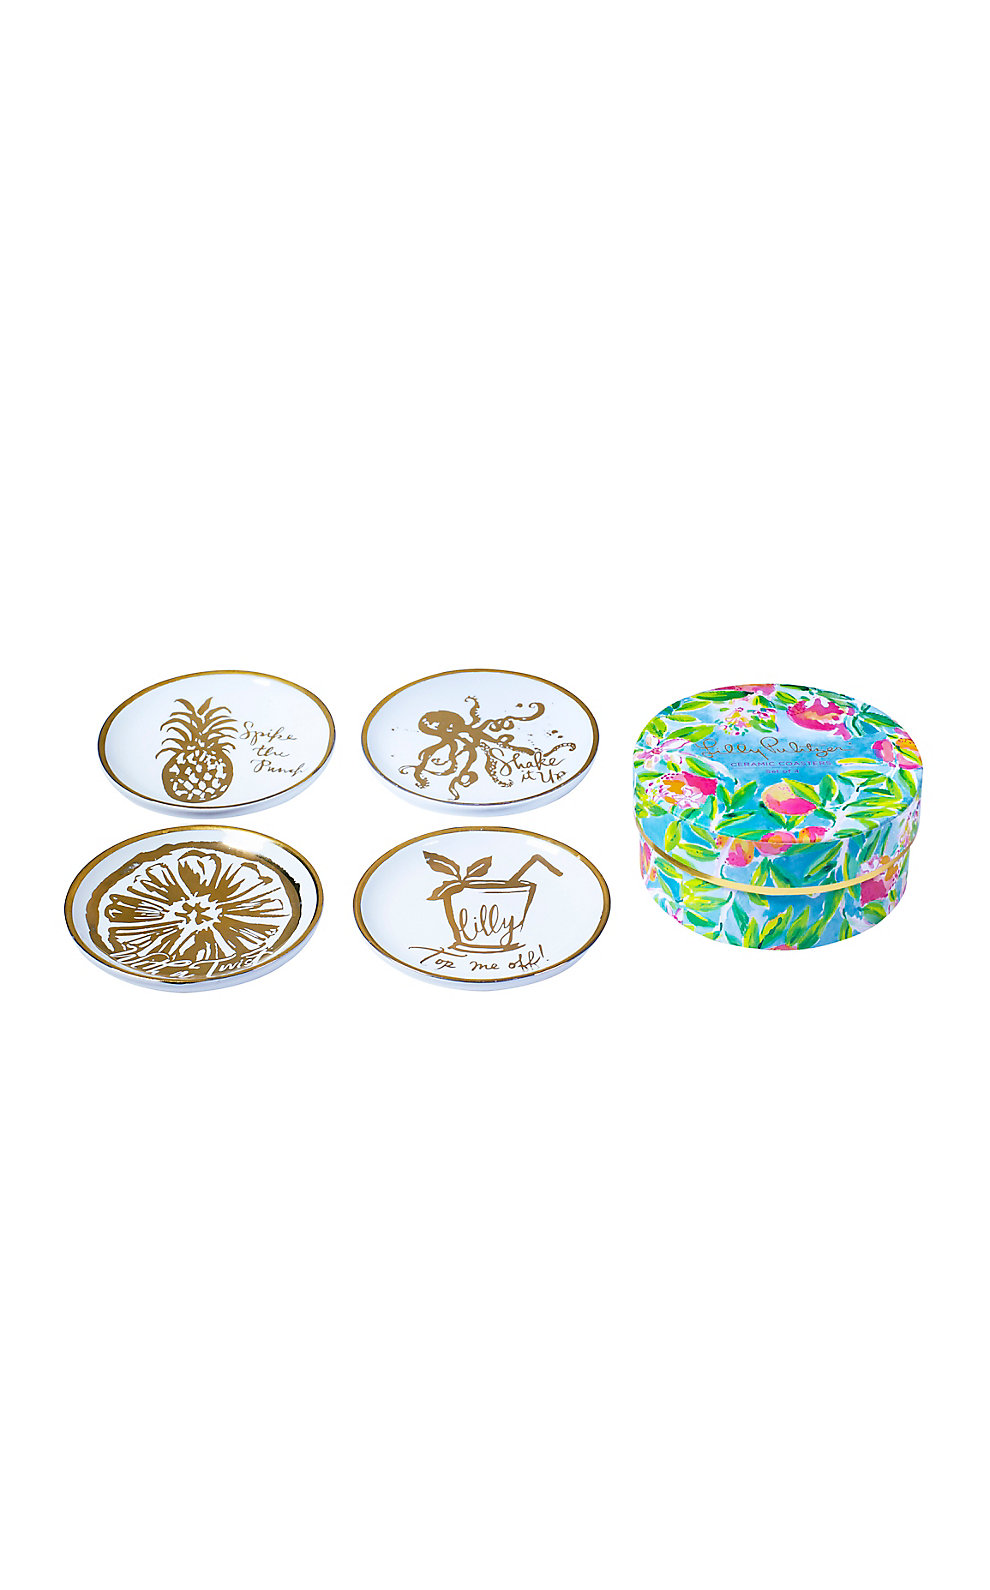 Lilly Pulitzer Ceramic Coasters